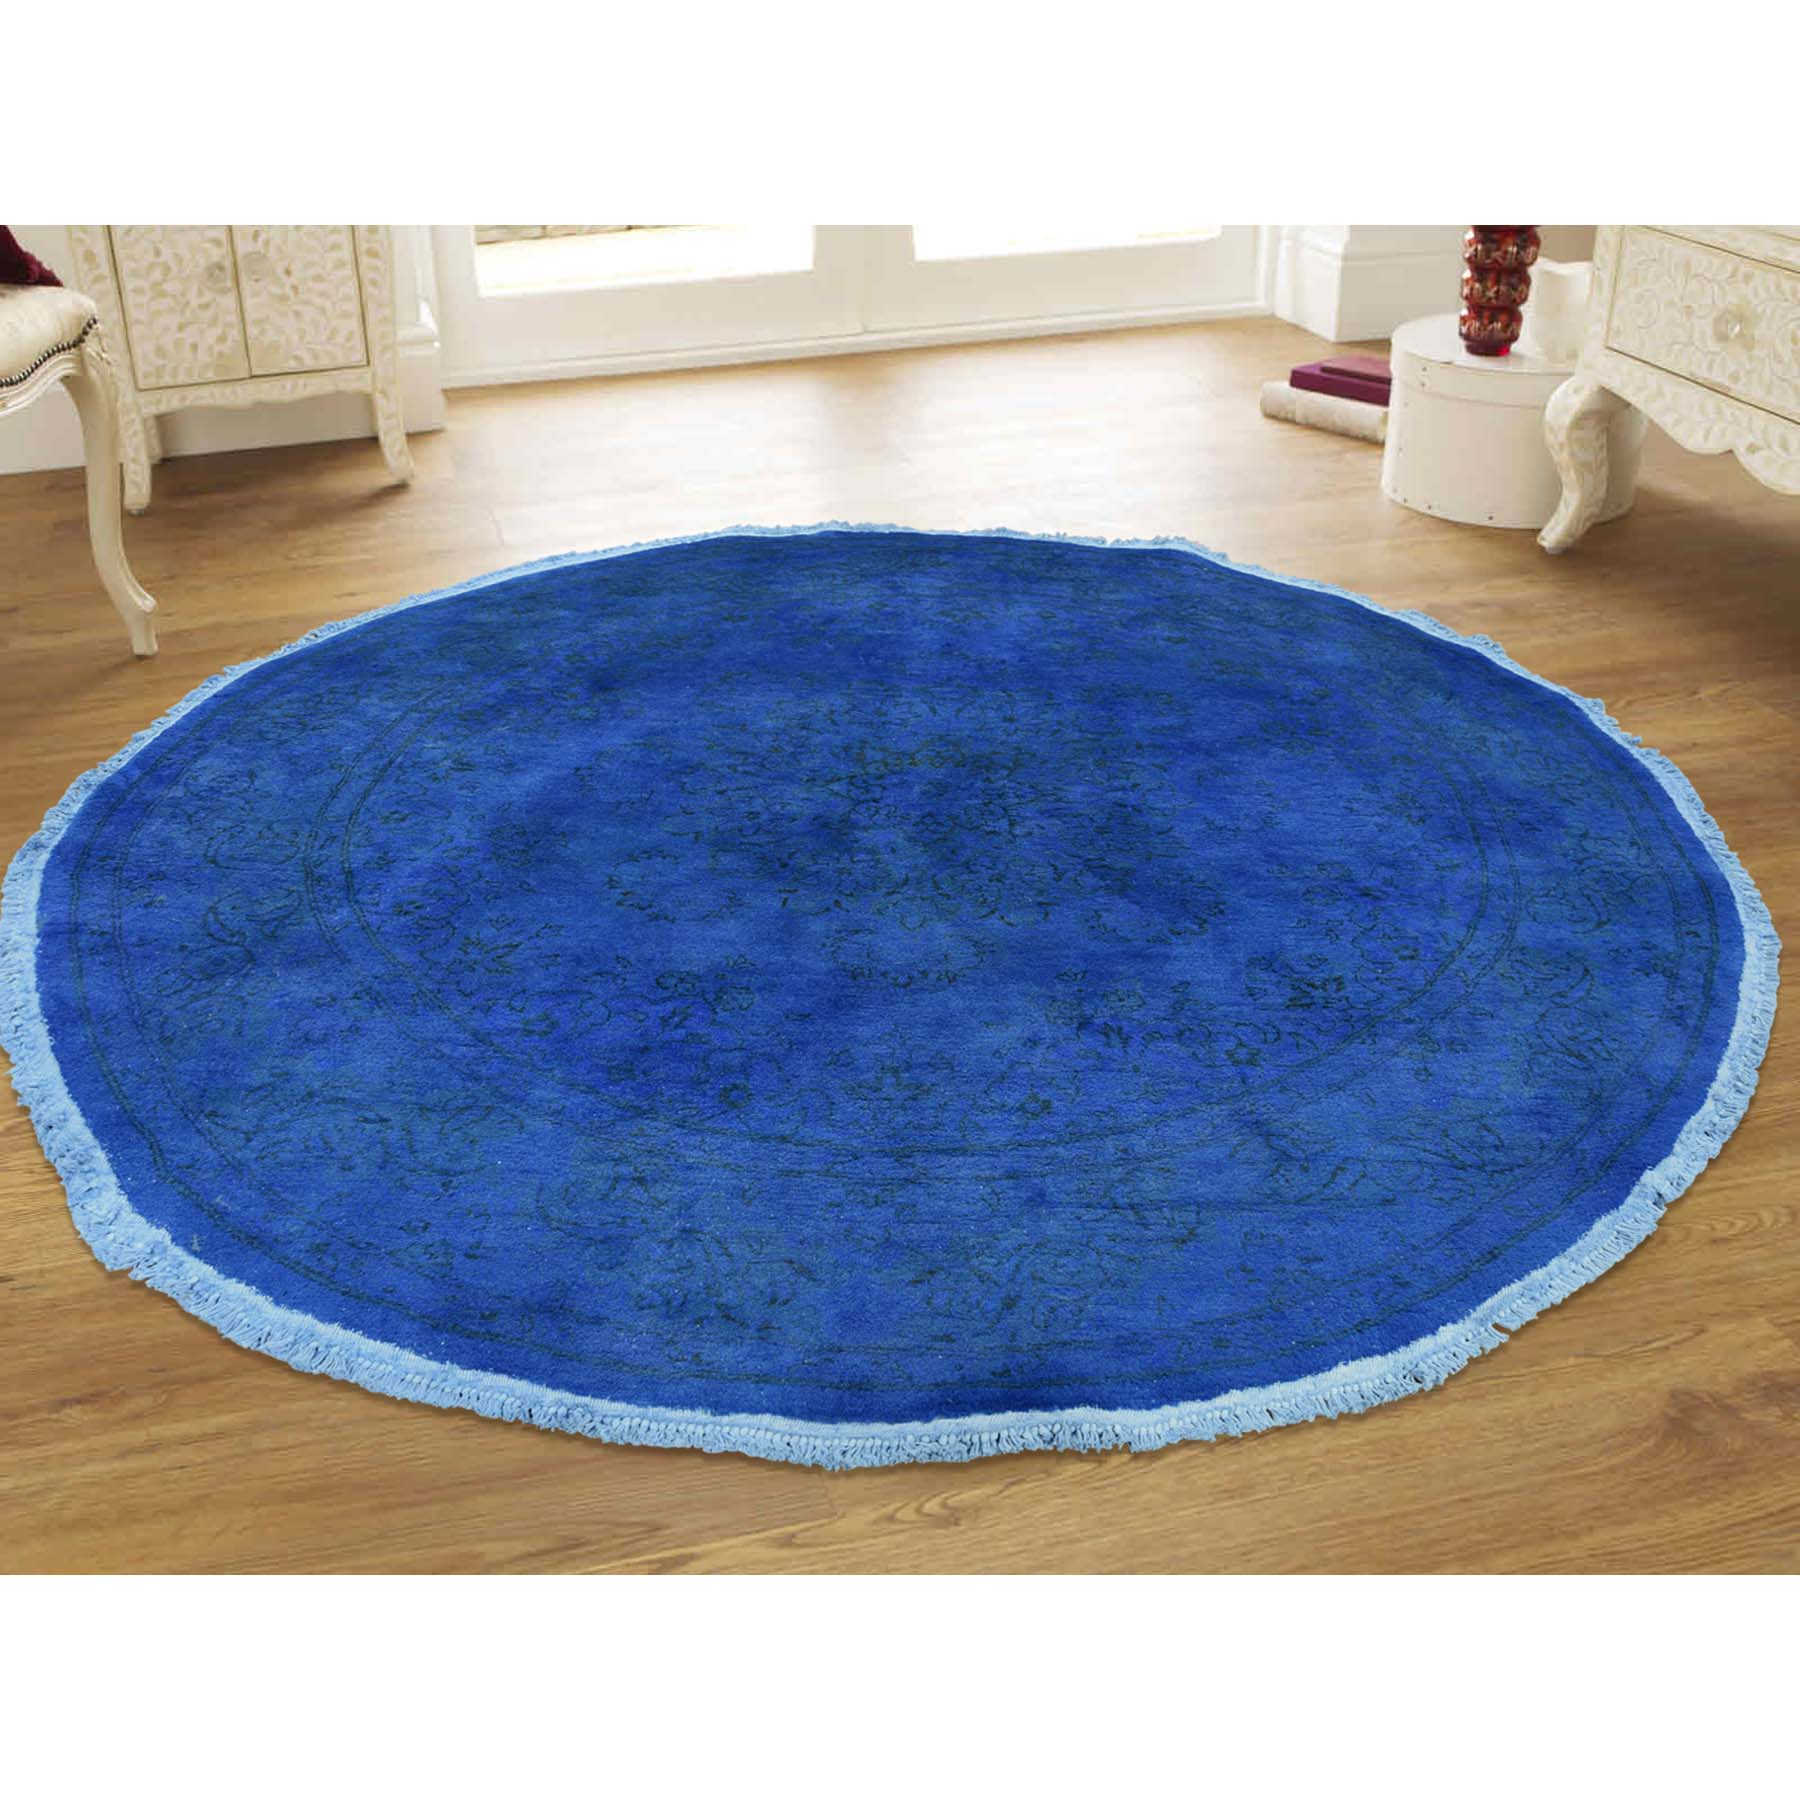 6-1 x6-1  Round Overdyed Pak Persian Hand-Knotted Oriental Rug